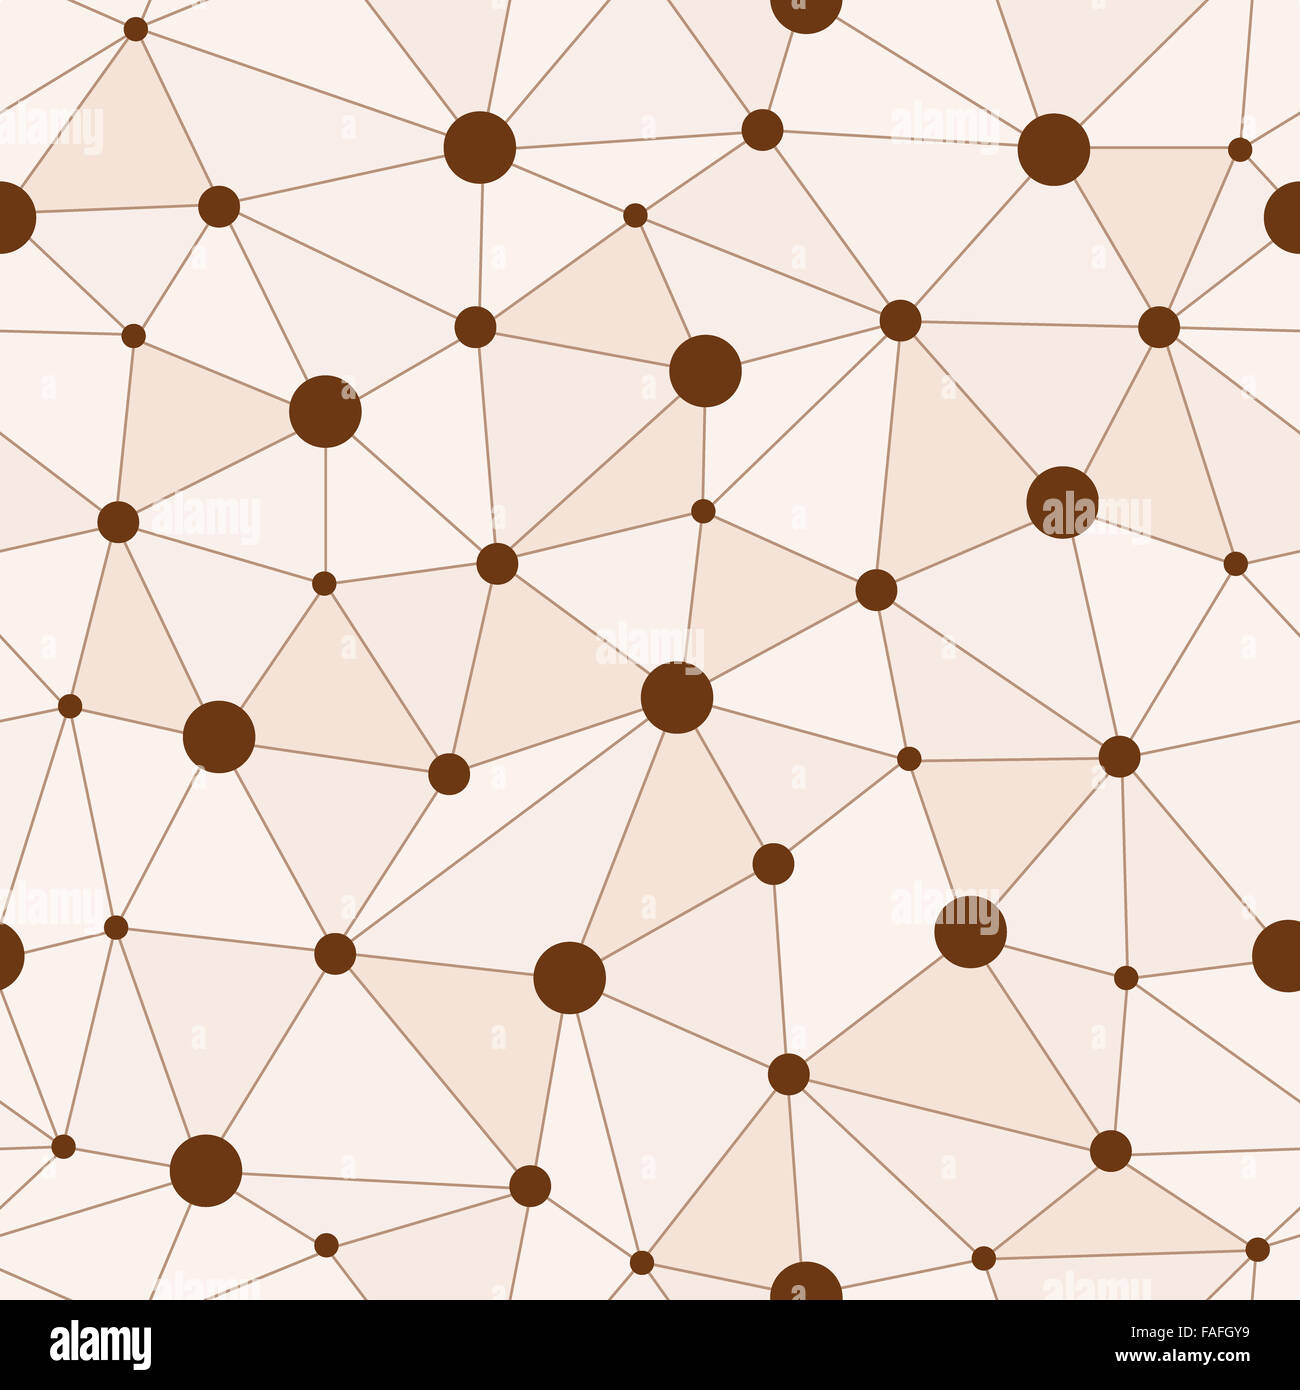 Atomic Background with Interconnected Brown Dots - Stock Image